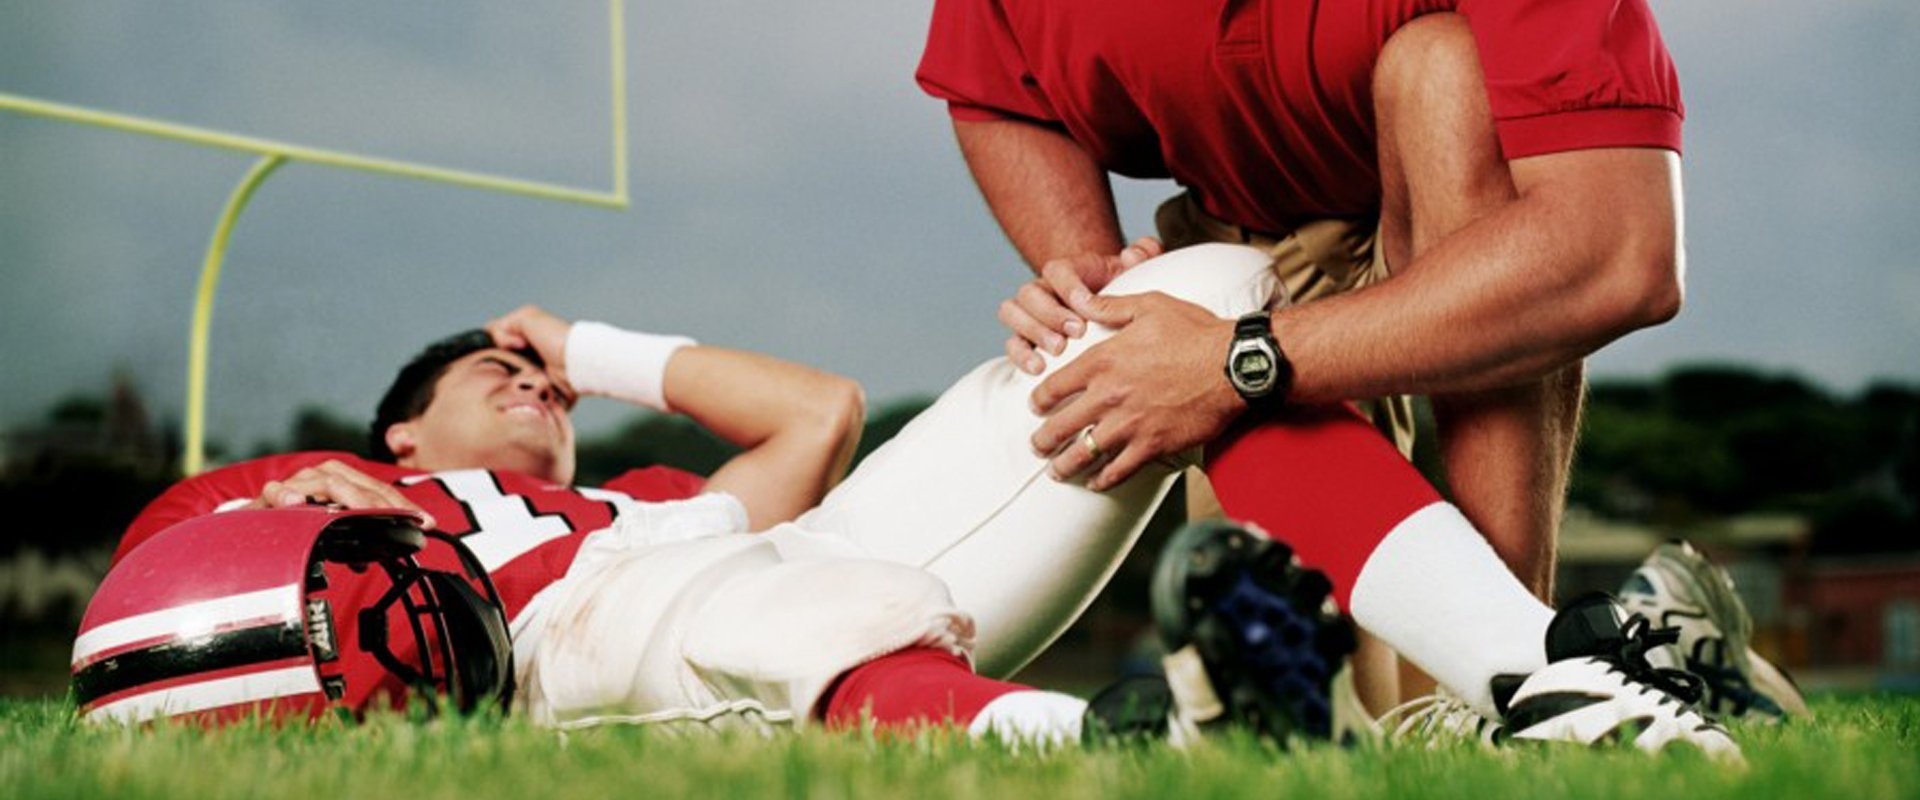 DO NOT NEGLECT SPORT INJURIES